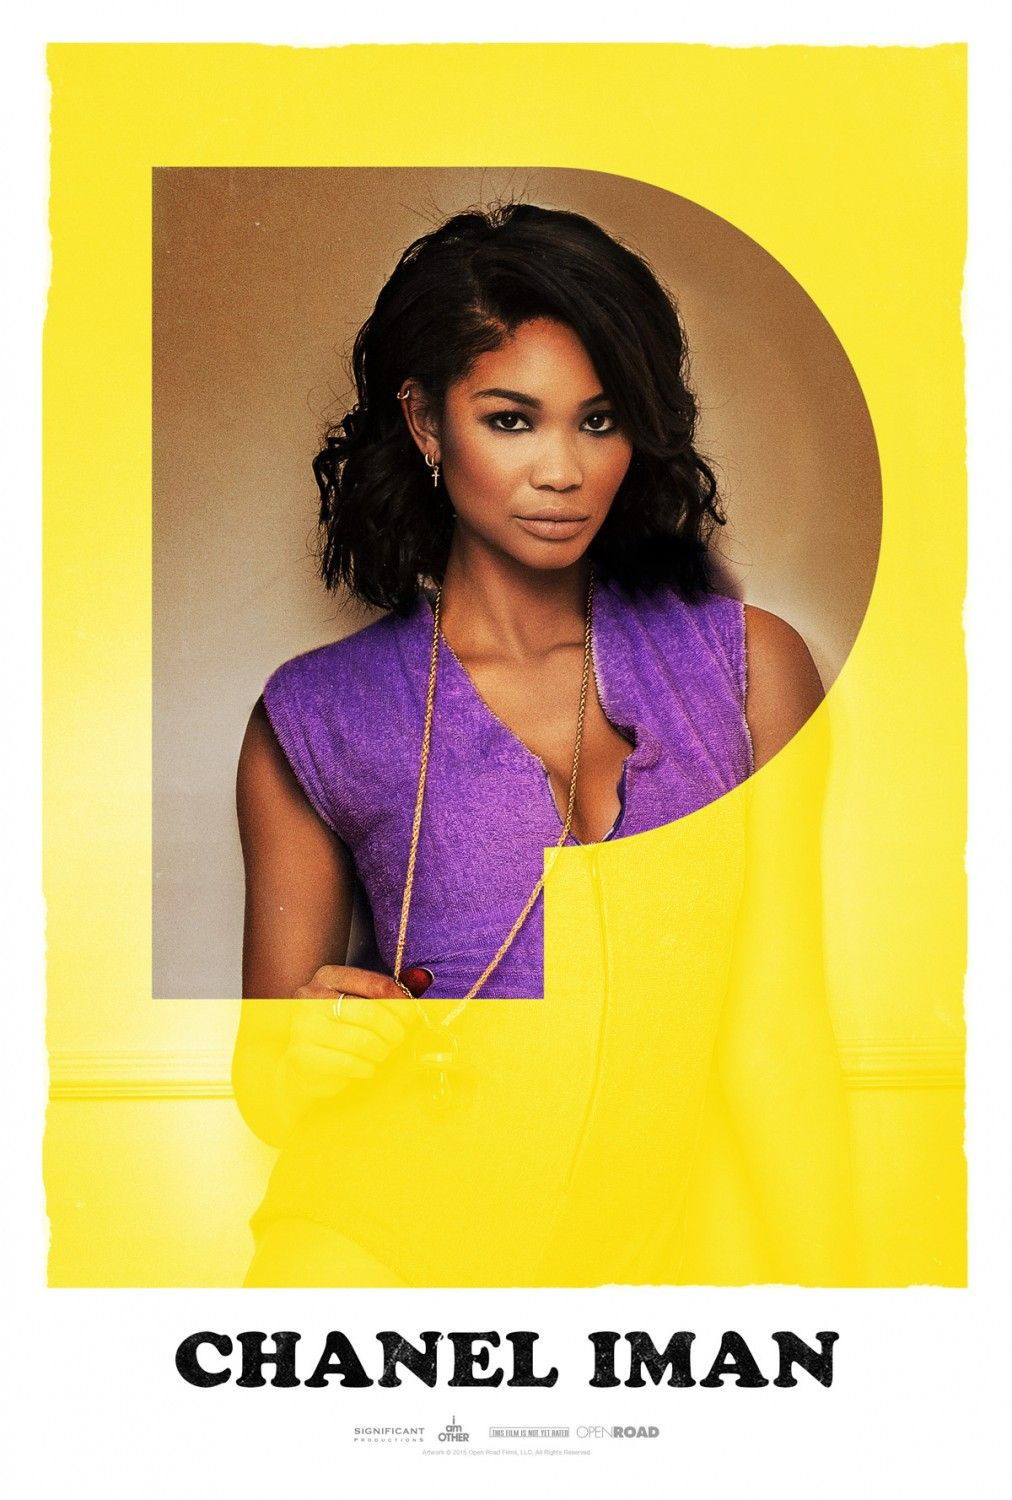 chanel iman poster for the movie dope posters pinterest chanel